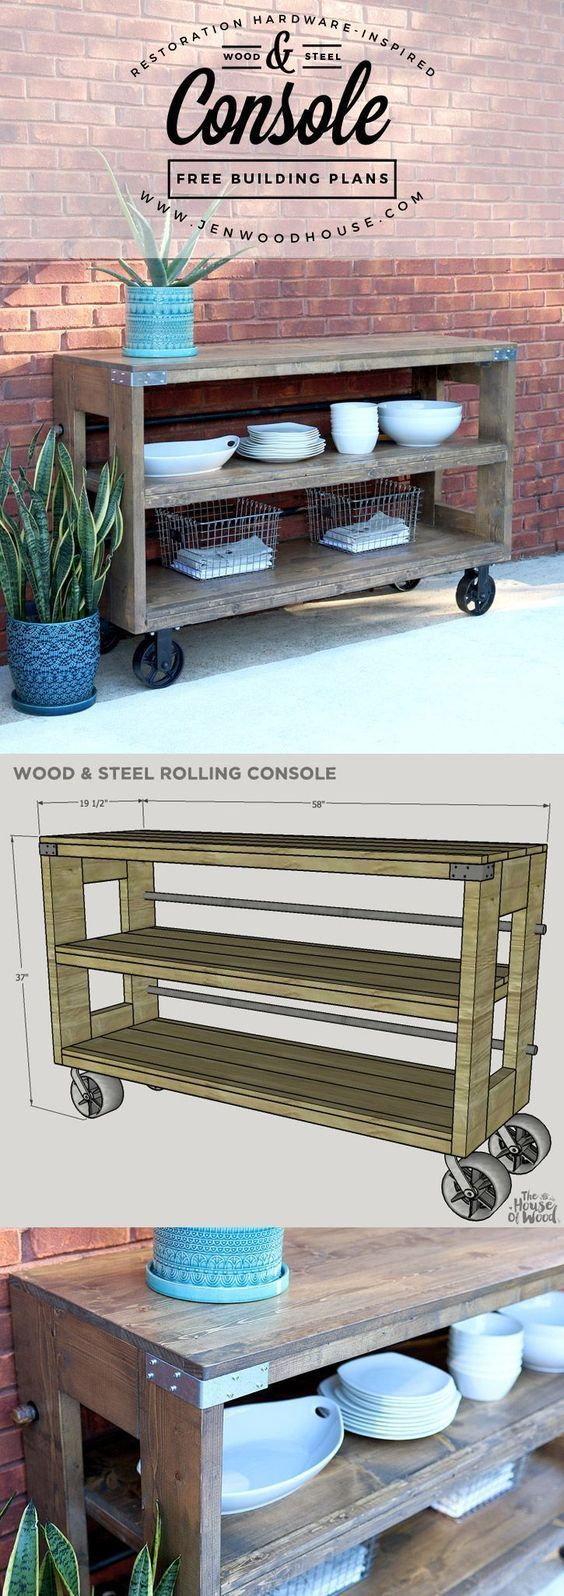 Restoration hardware shower curtain bee - How To Build A Diy Restoration Hardware Inspired Wood And Steel Console Via Jen Woodhouse